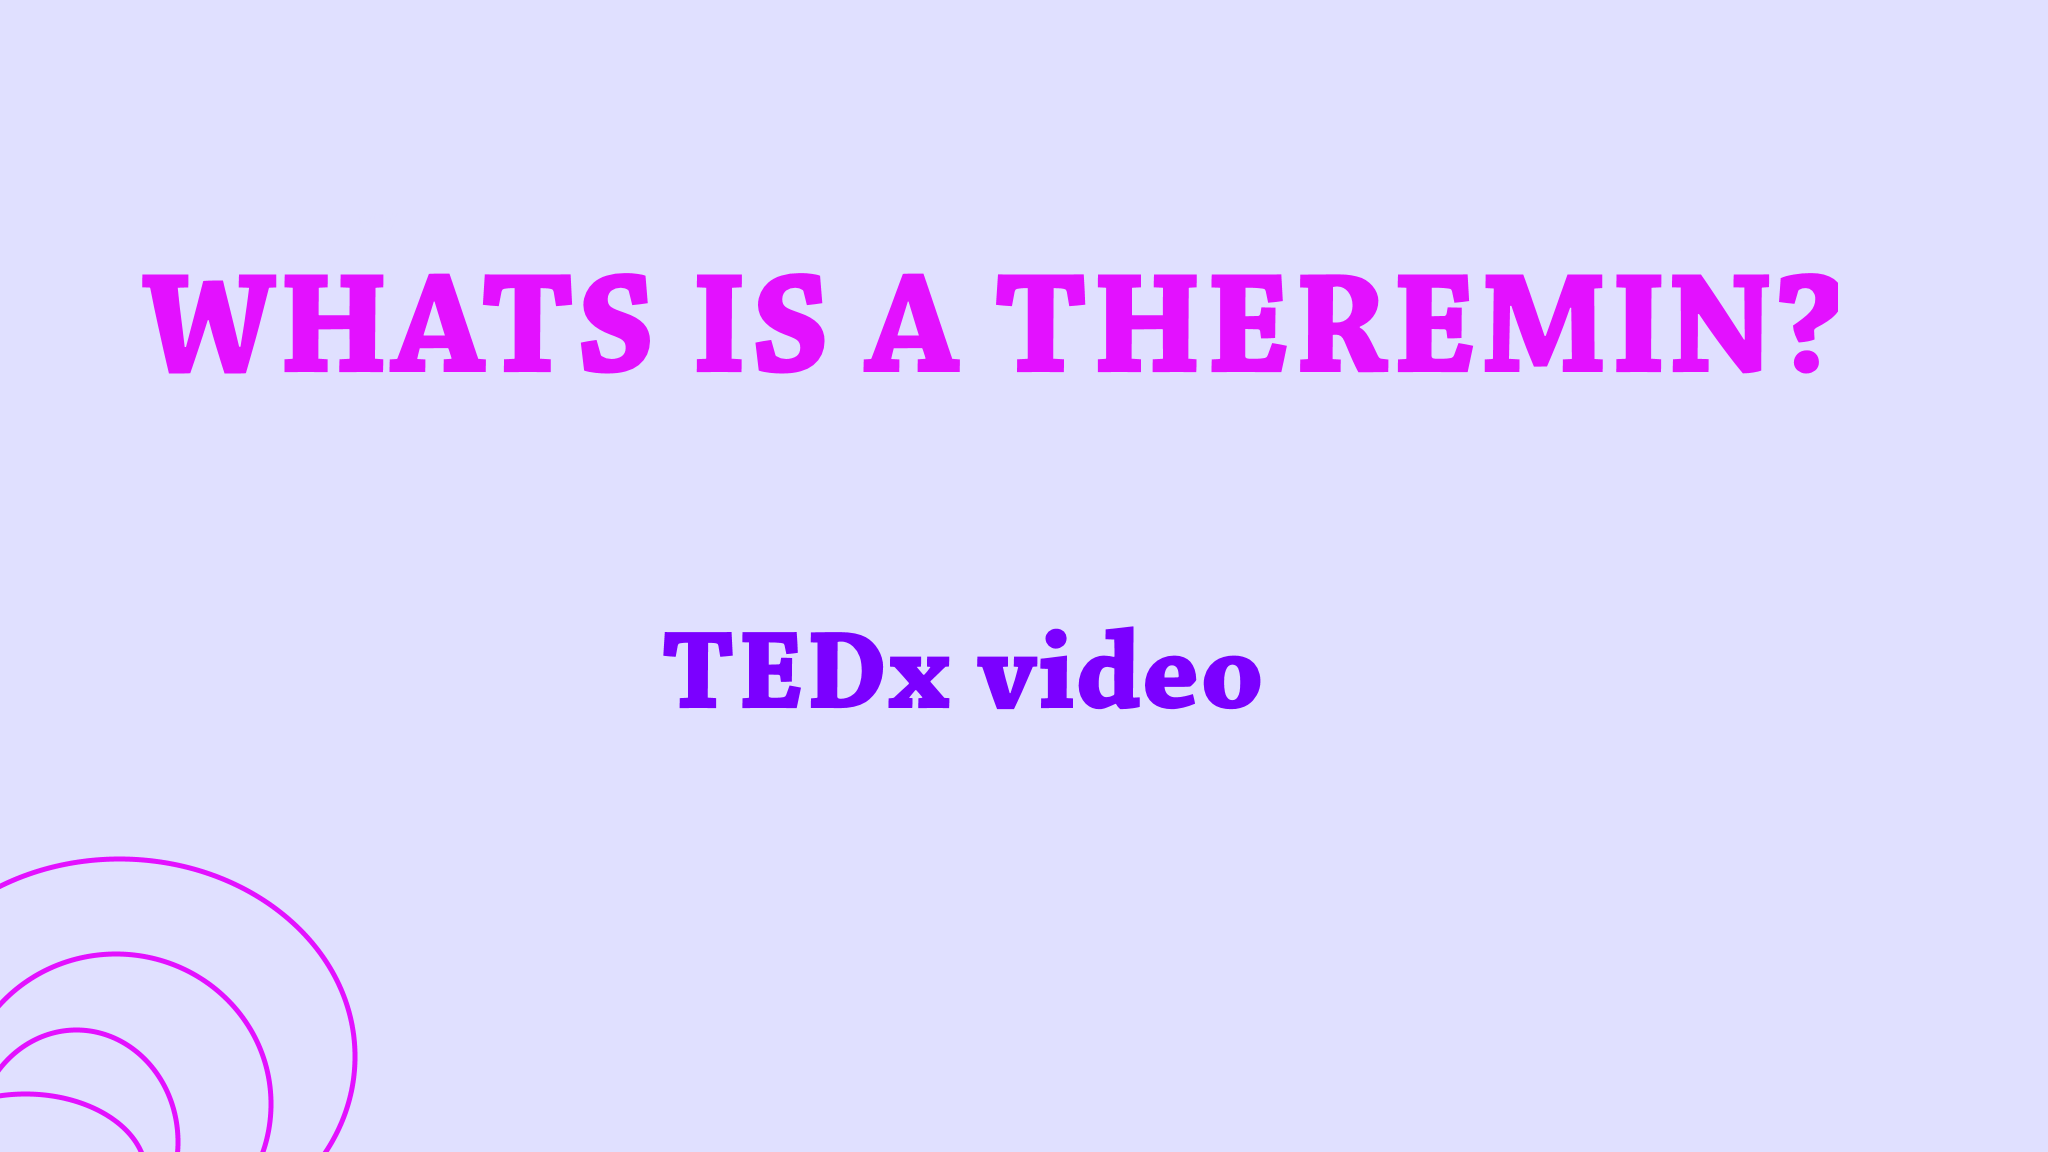 WHATS IS A THEREMIN